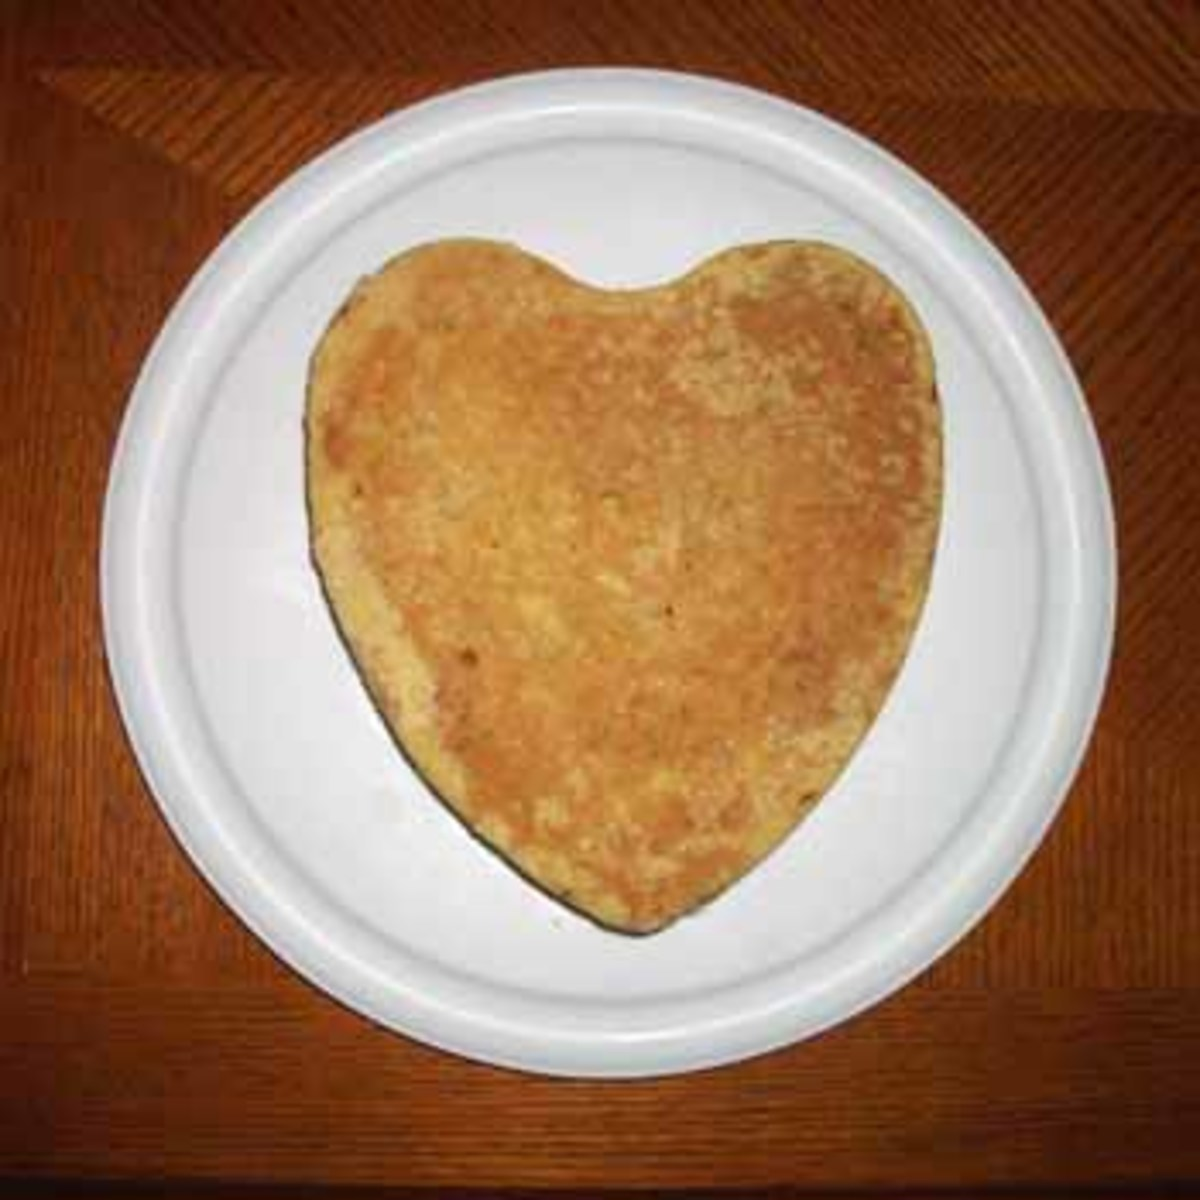 Place the heart cake on top of the edible glue